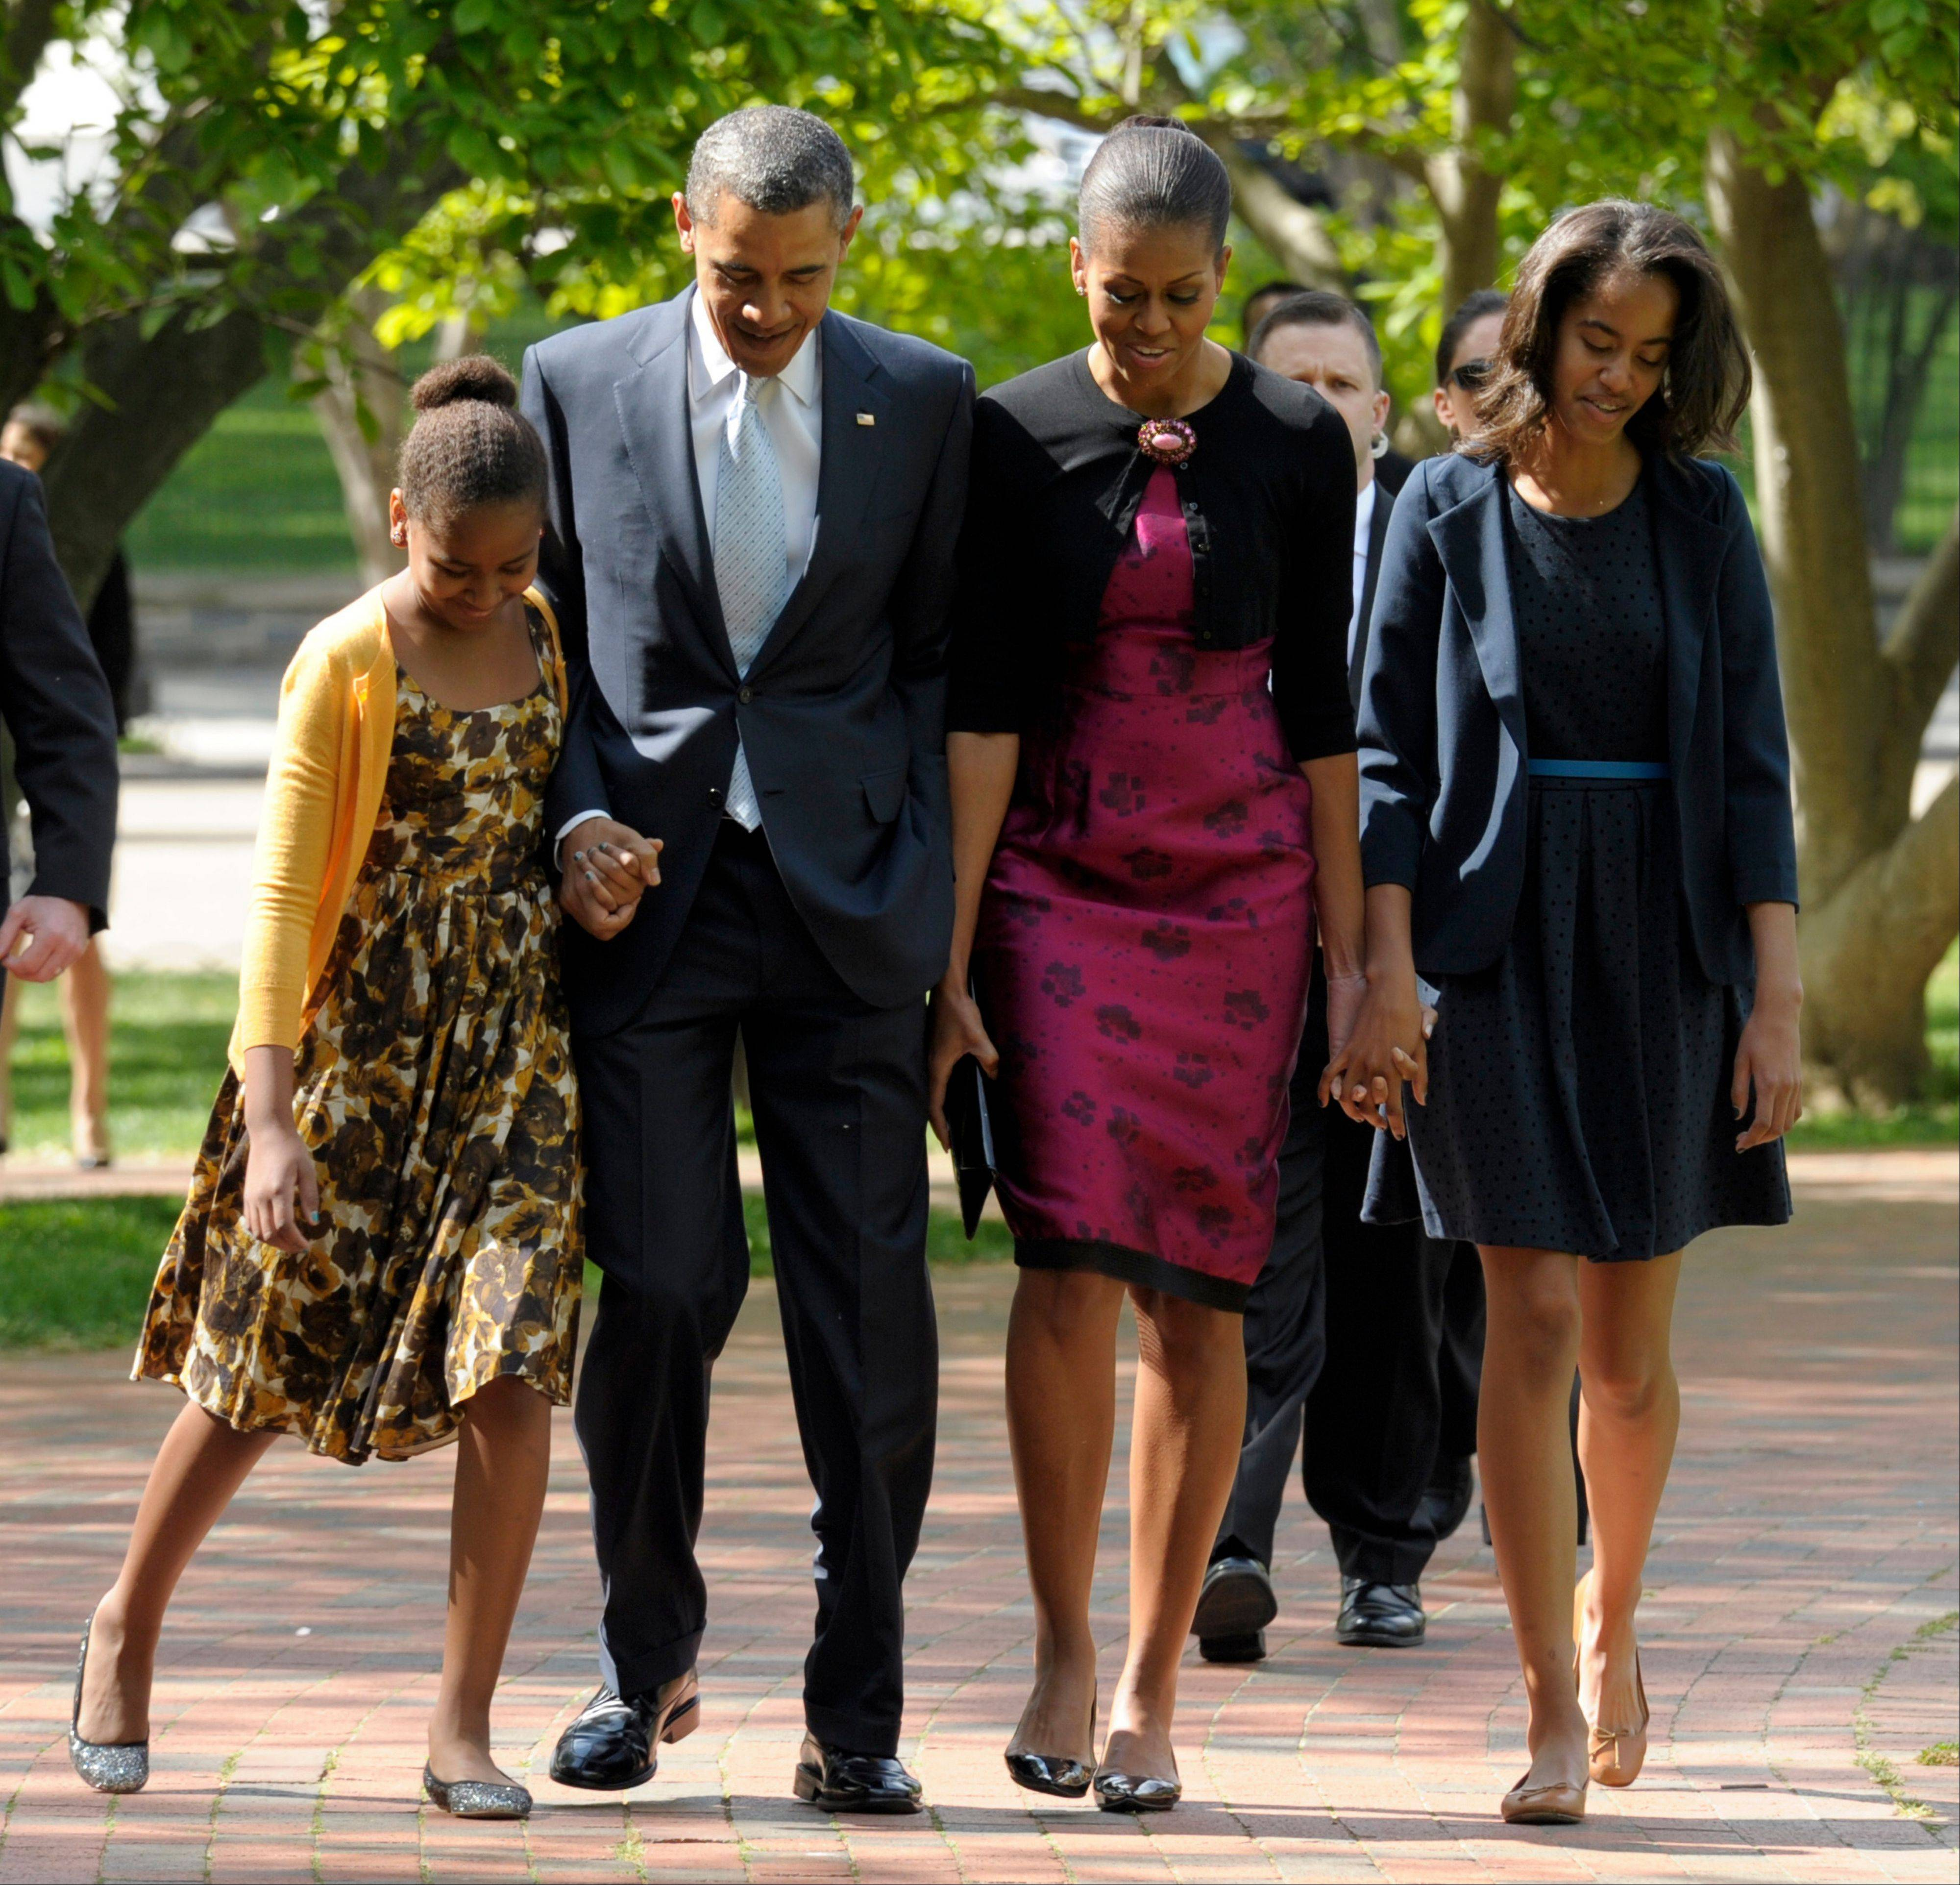 President Barack Obama, first lady Michelle Obama, daughters Malia, right, and Sasha walk across the square from the White House to St. John's Episcopal Church for Easter service in Washington.